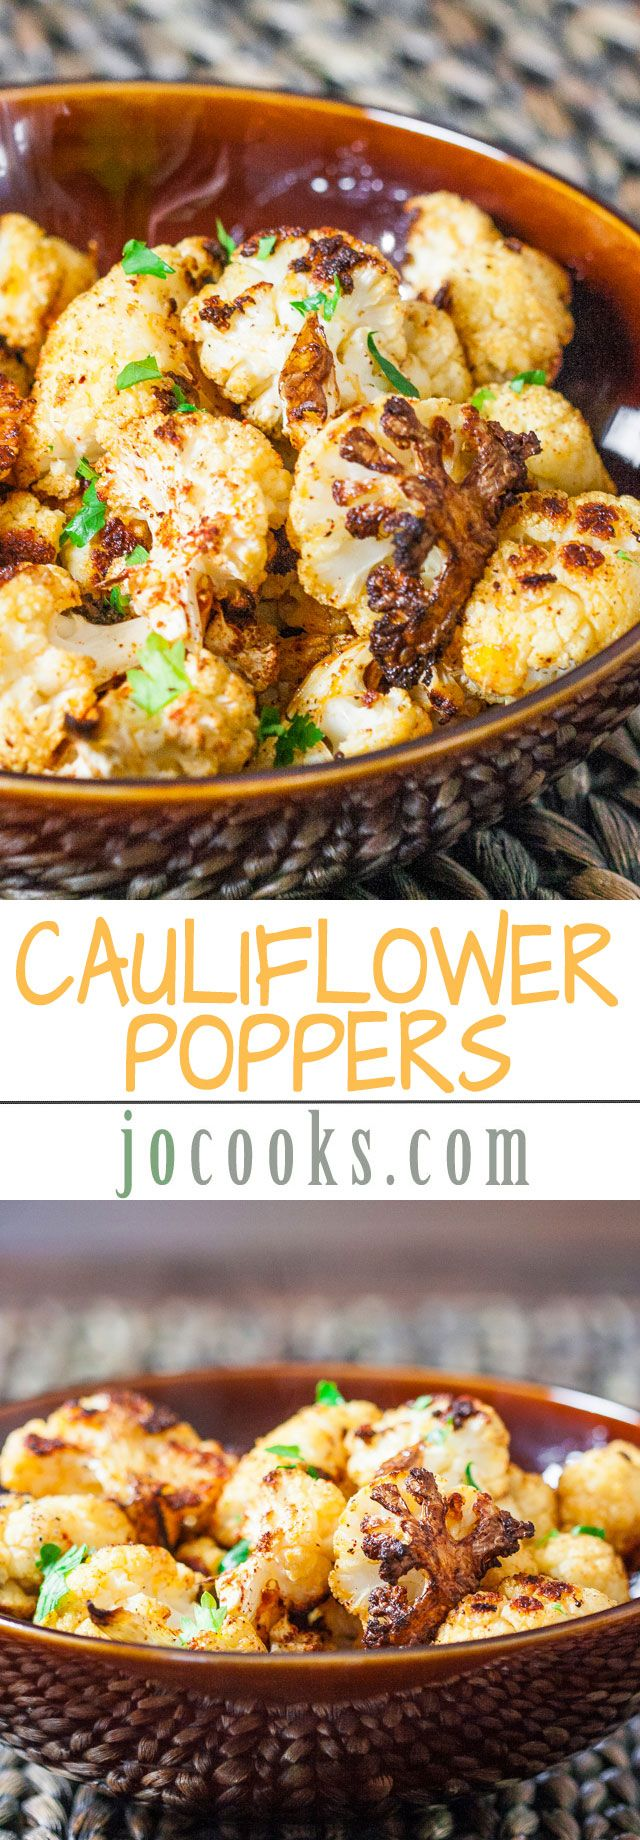 Cauliflower Poppers - I could get down with these plus I can eat them for 21 day fix